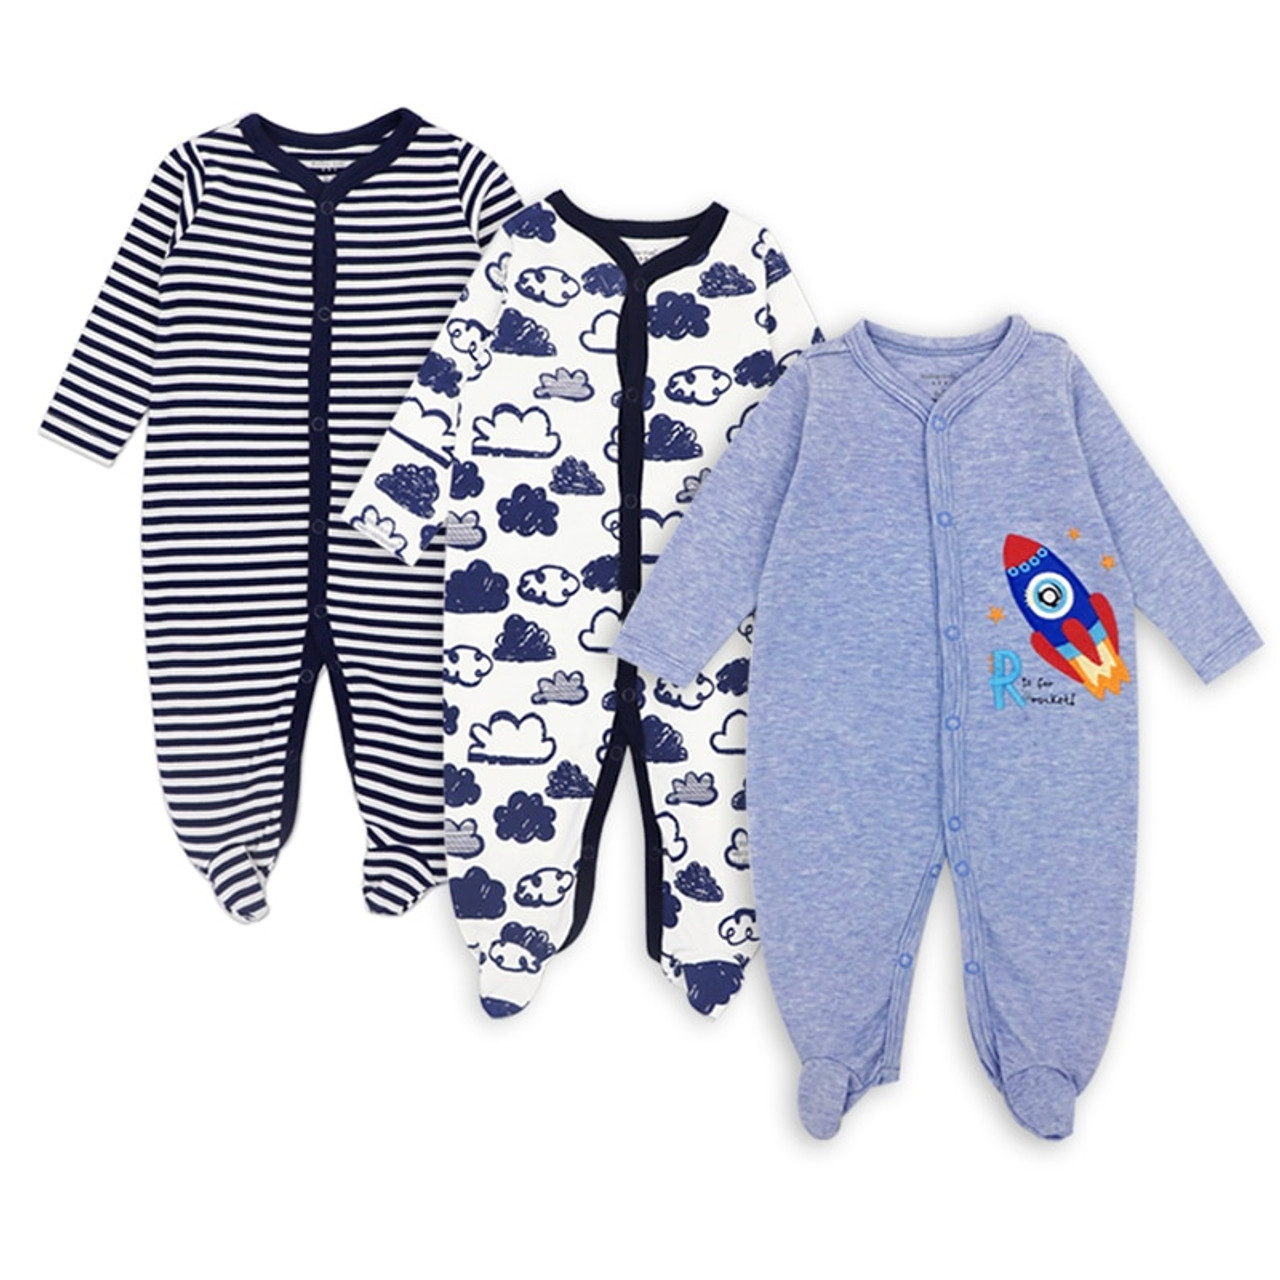 Toddler Infant Kids Baby Girls Boys Clothes Romper Jumpsuit Playsuit Outfit Set